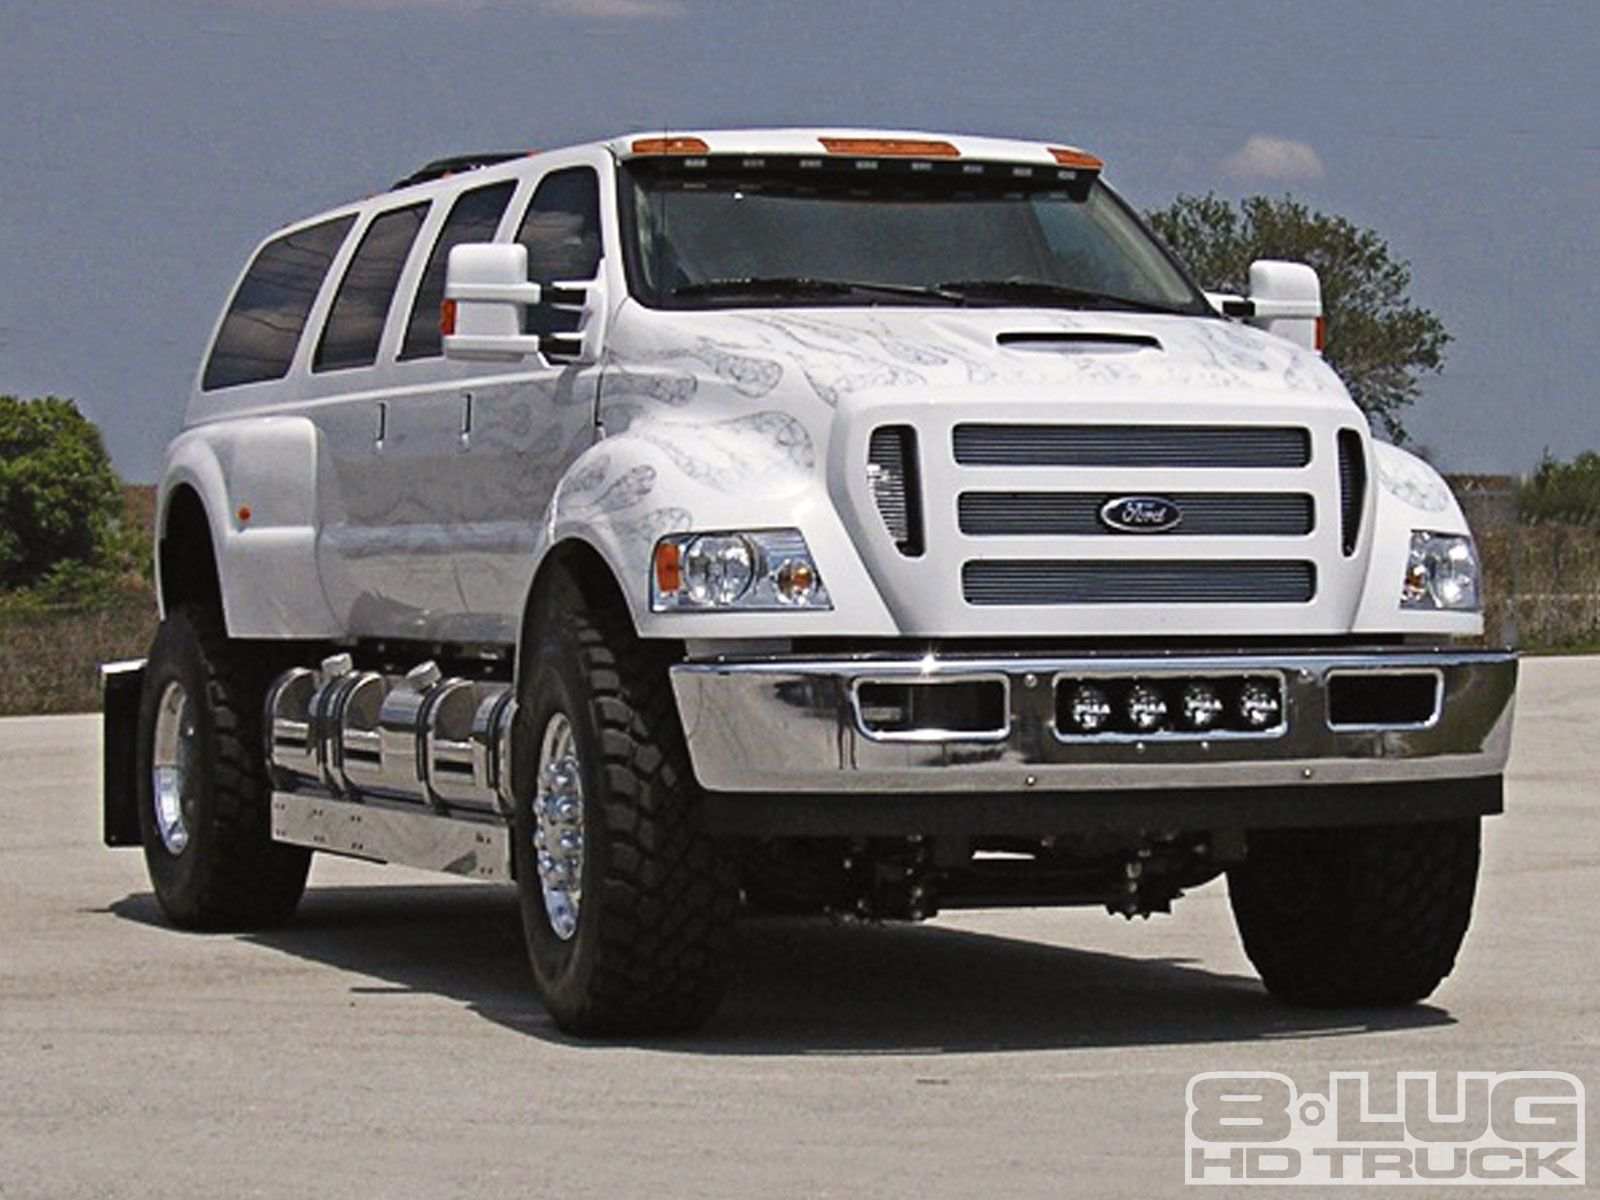 The ford f 650 concept truck is big the ford f 650 concept truck is - Ford F650